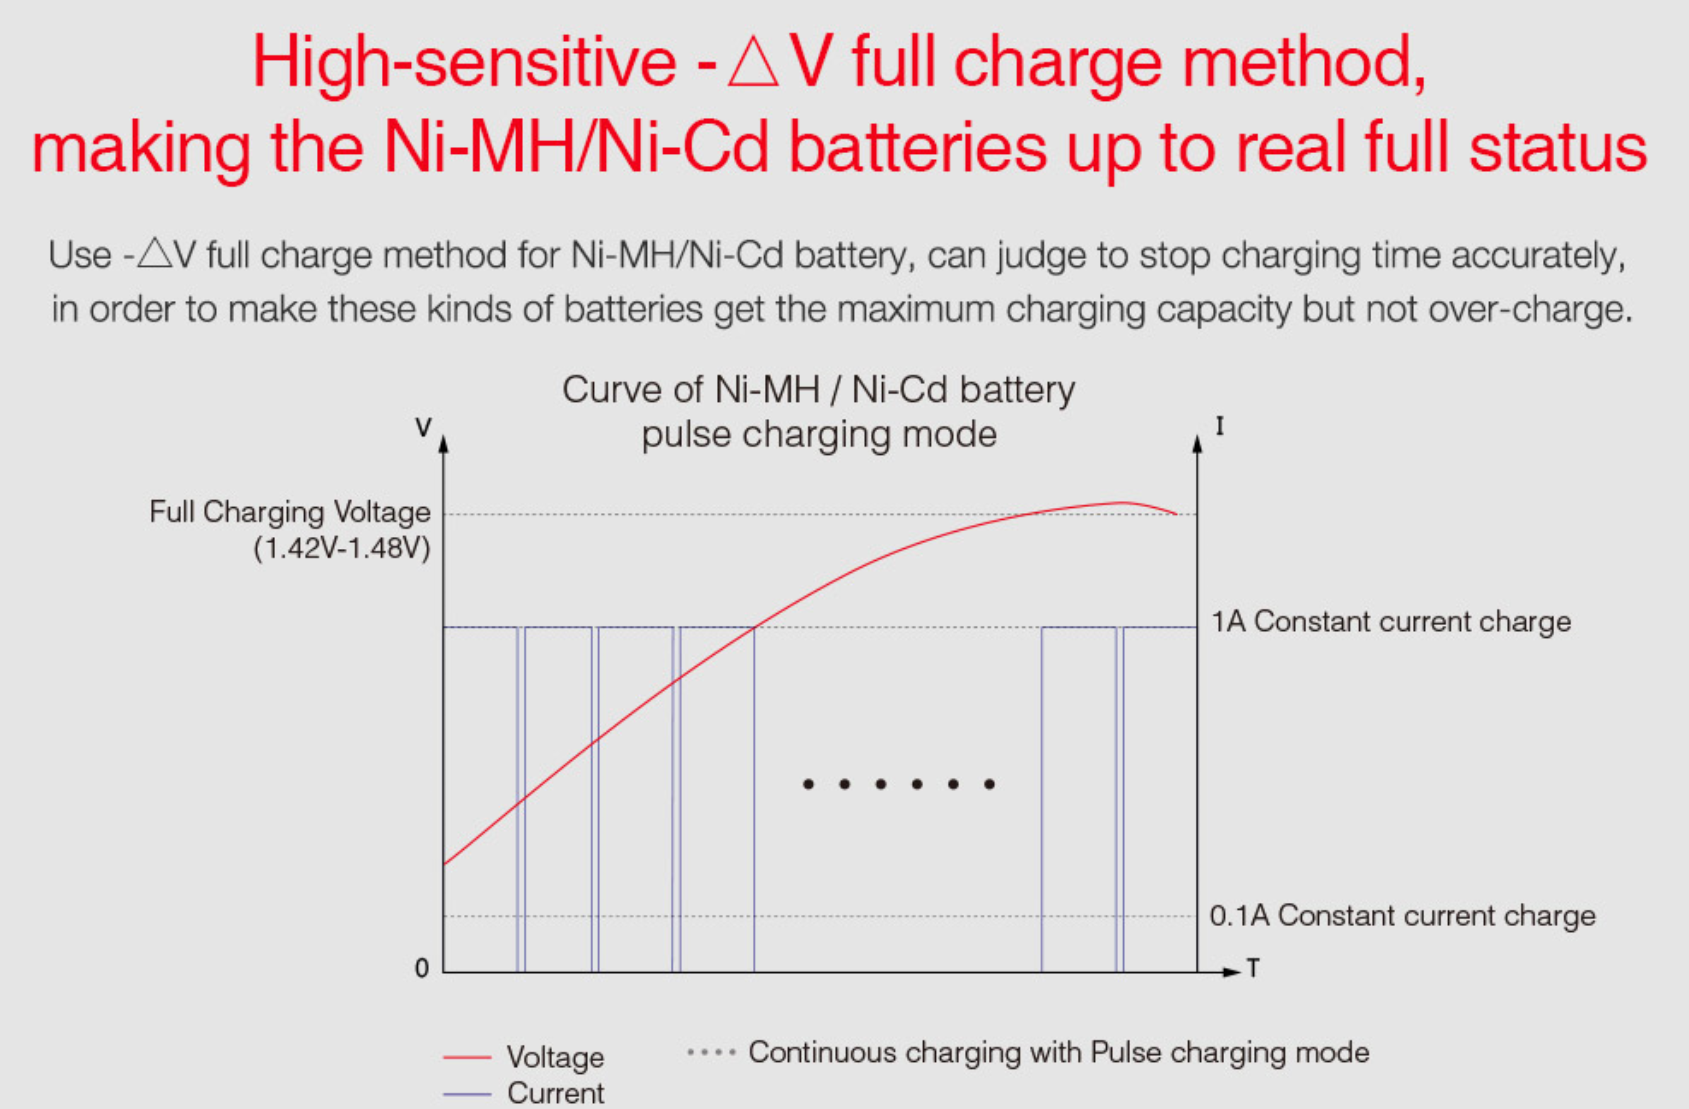 Budgetlightforumcom Charger Reviews High Current Battery It Charges All Types Of Lithium Batteries And Nicd Nimh With The Proper Cc Cv Delta V Charge Curves Good Characteristics For